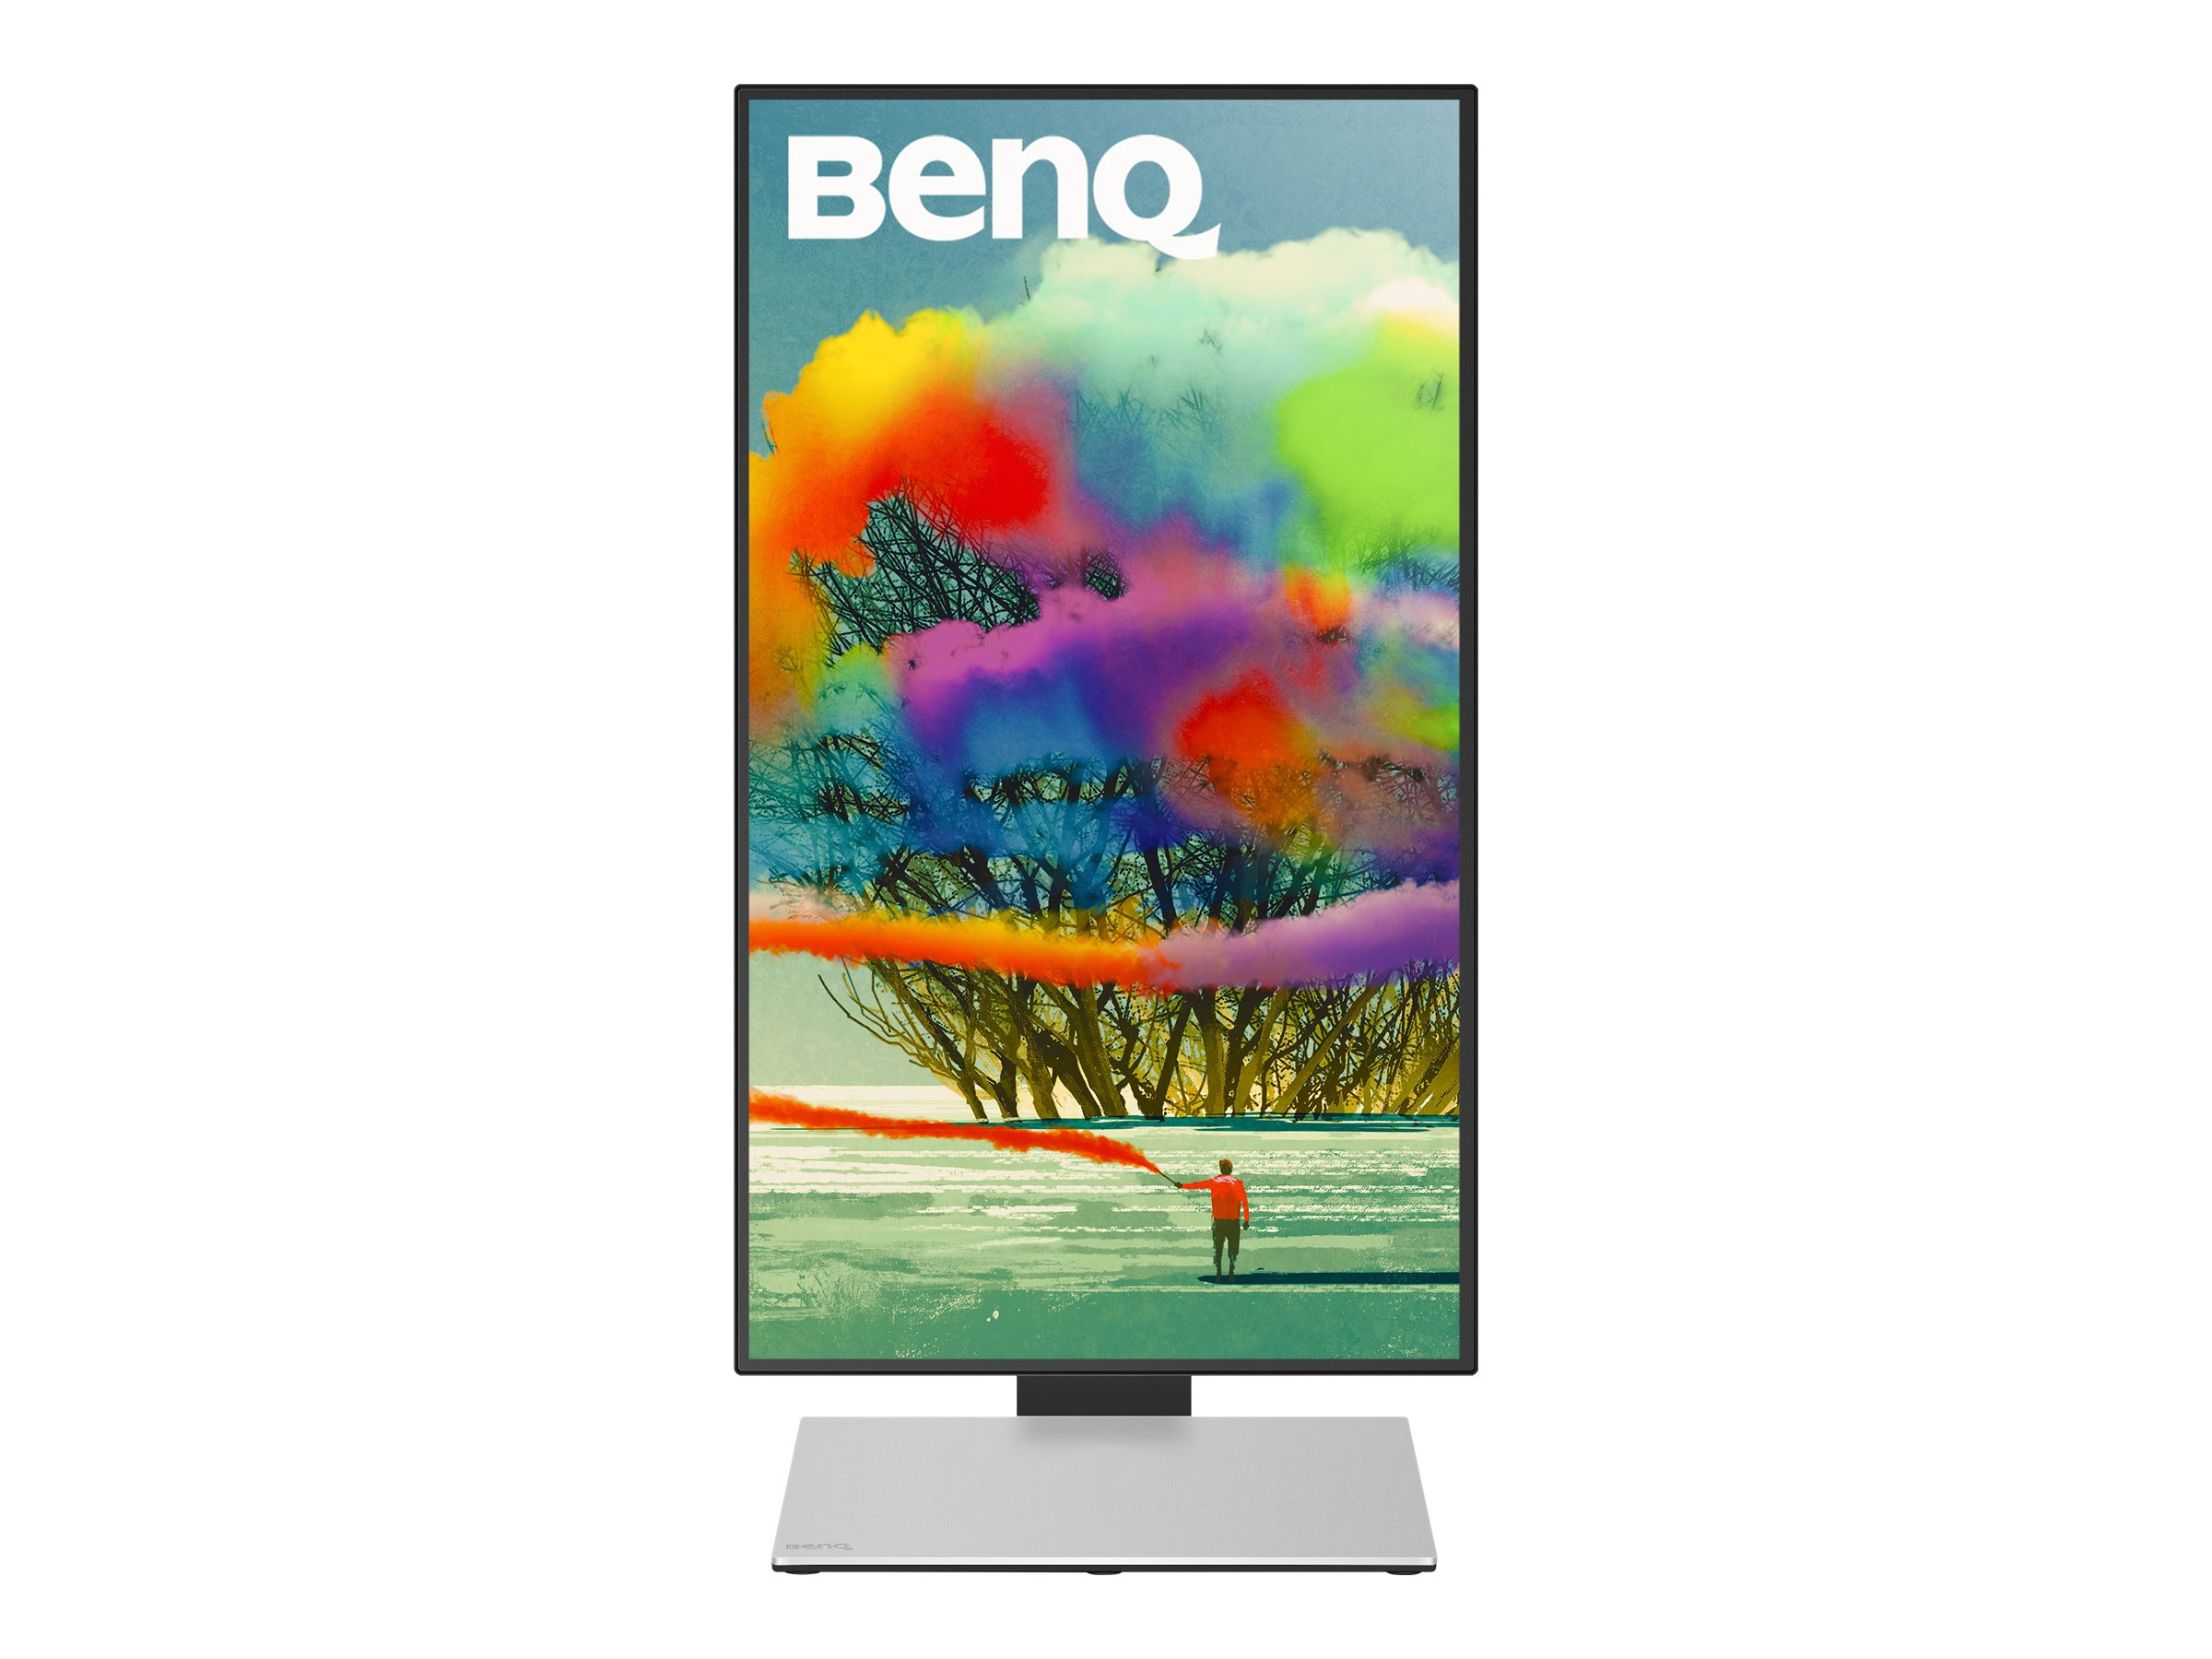 Benq 27 PD2710QC 2K QHD LED-LCD Monitor, Black